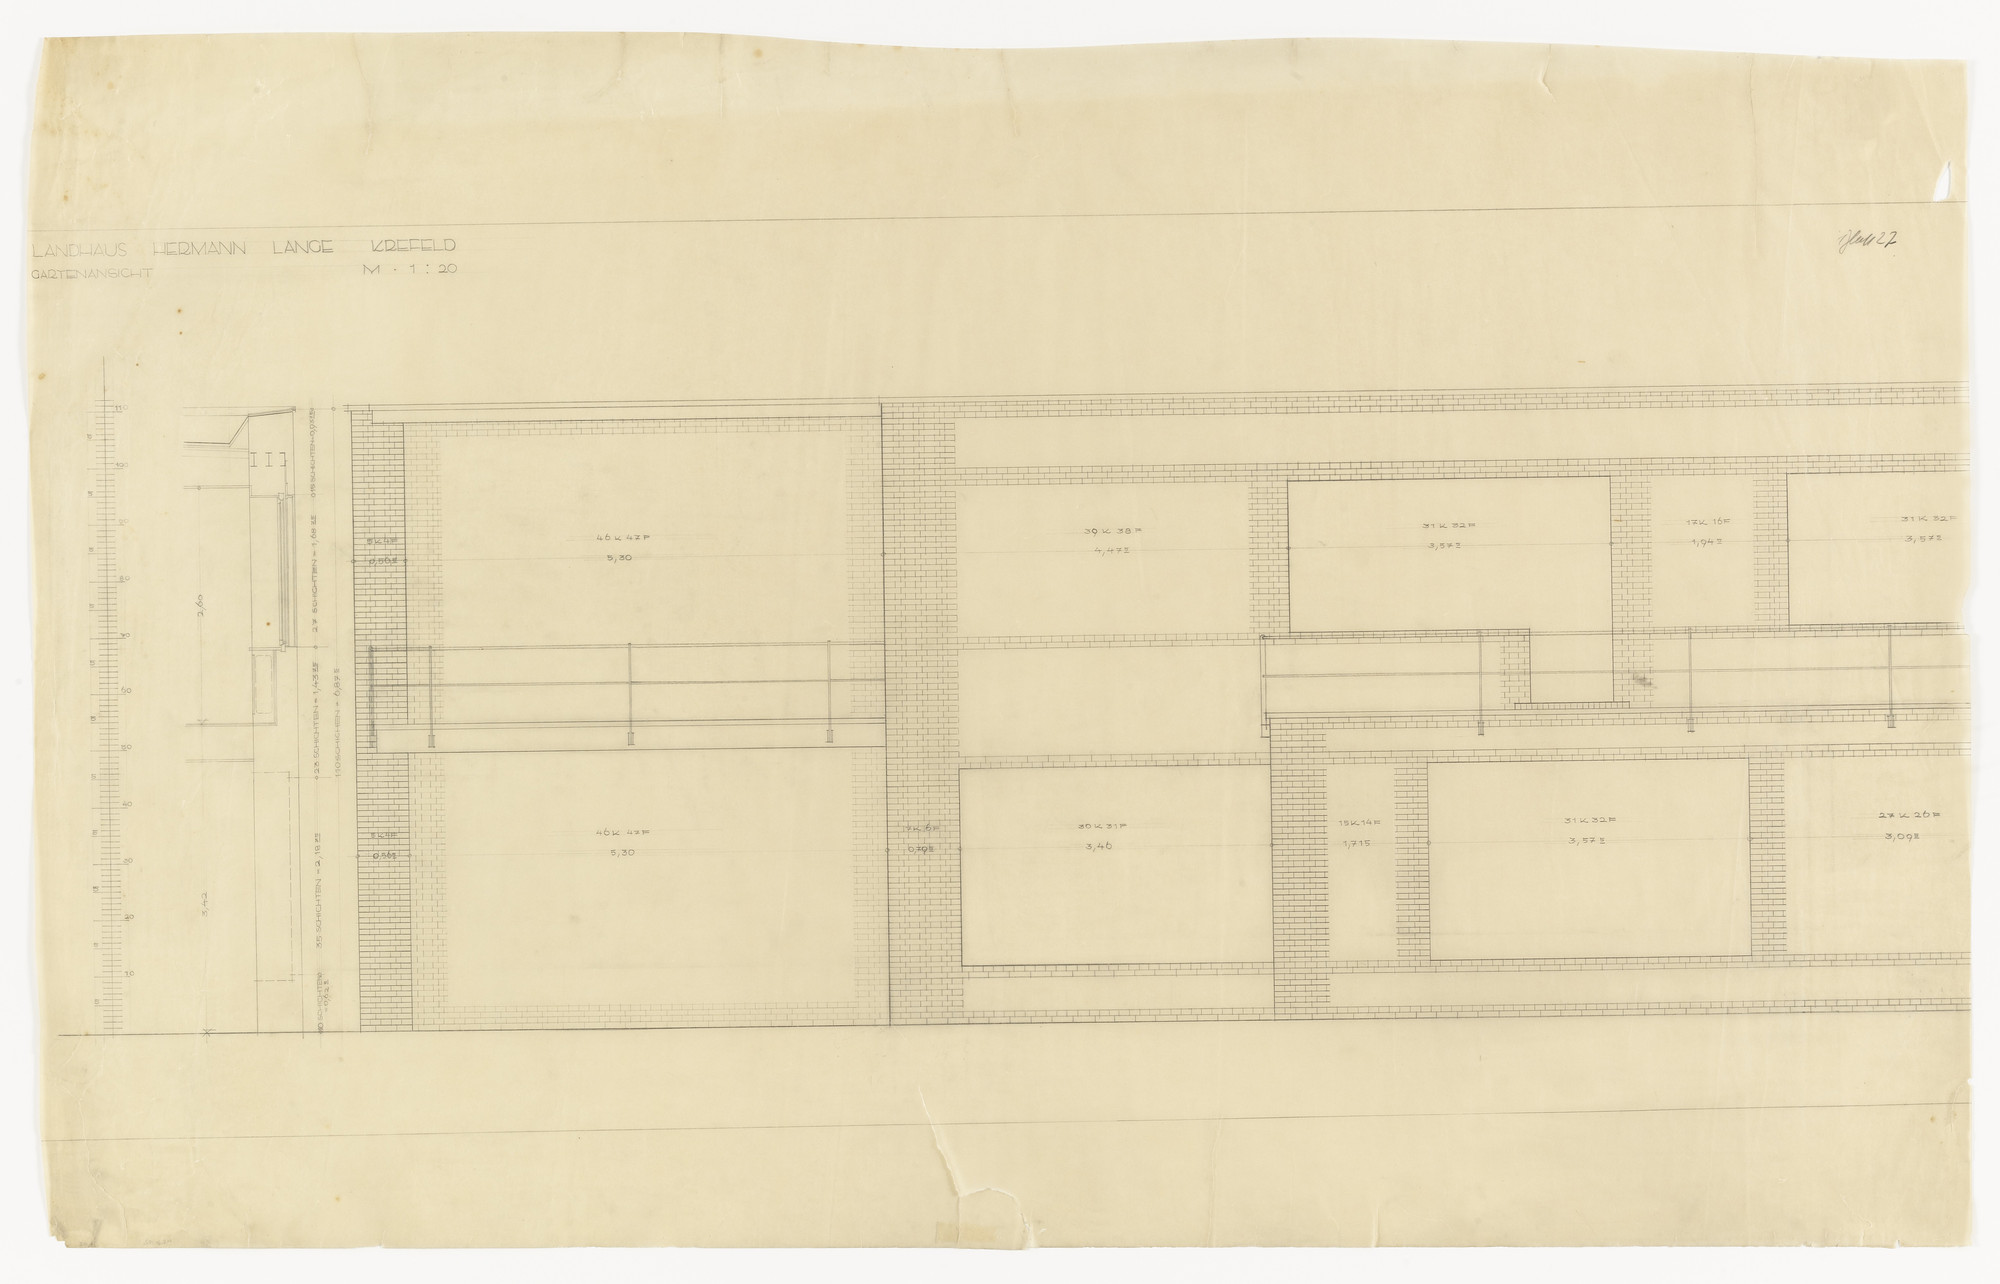 Ludwig Mies van der Rohe. Hermann Lange House, Krefeld, Germany, Elevation with window details. 1927-1930